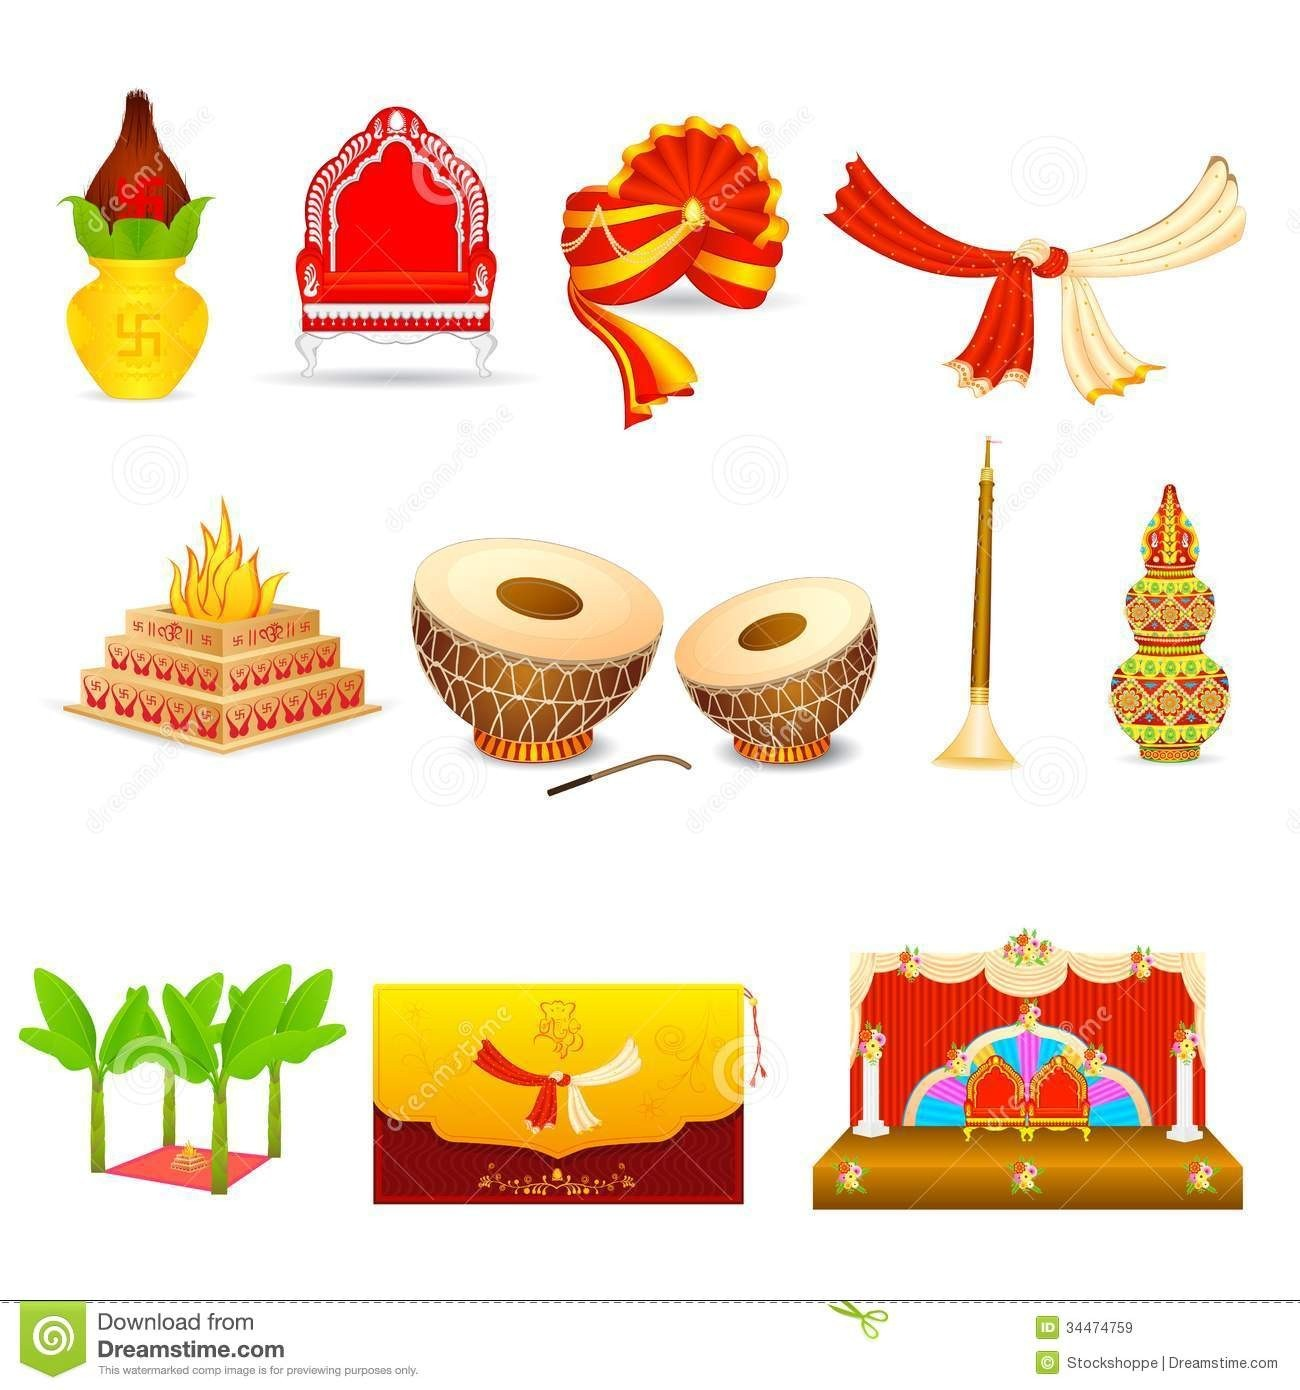 Indian wedding clipart psd free download 2 » Clipart Portal.